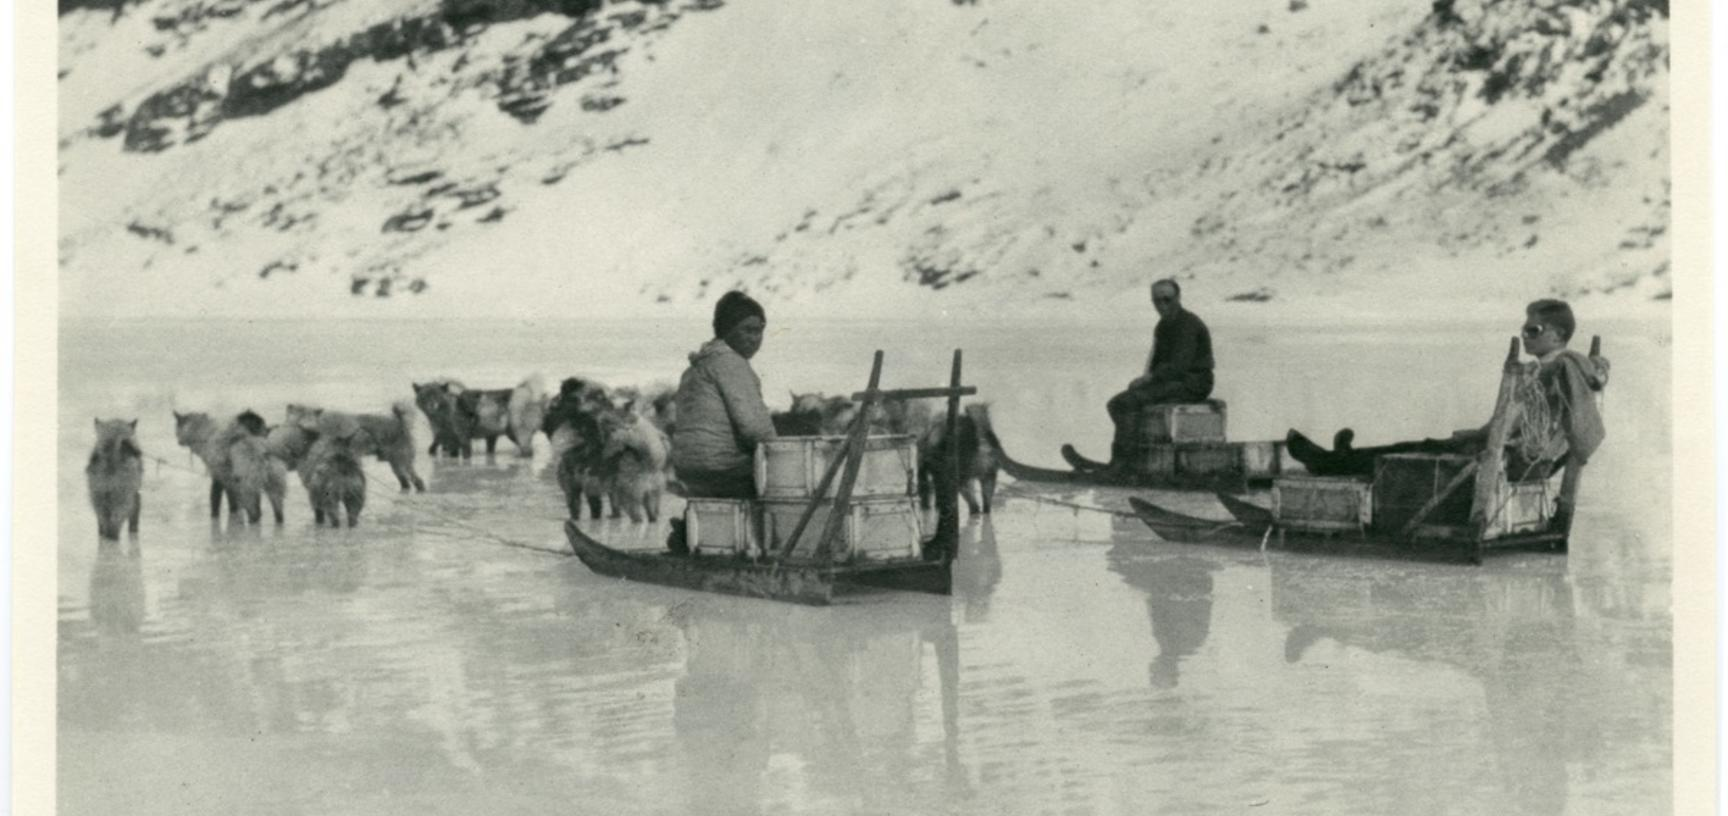 Rebecca (Inuk), Percy Lemon and Alfred Stephenson seated on sledges at Base Fjord. Photograph by Henry Iliffe Cozens. Base Fjord, Greenland. 1930–1931.